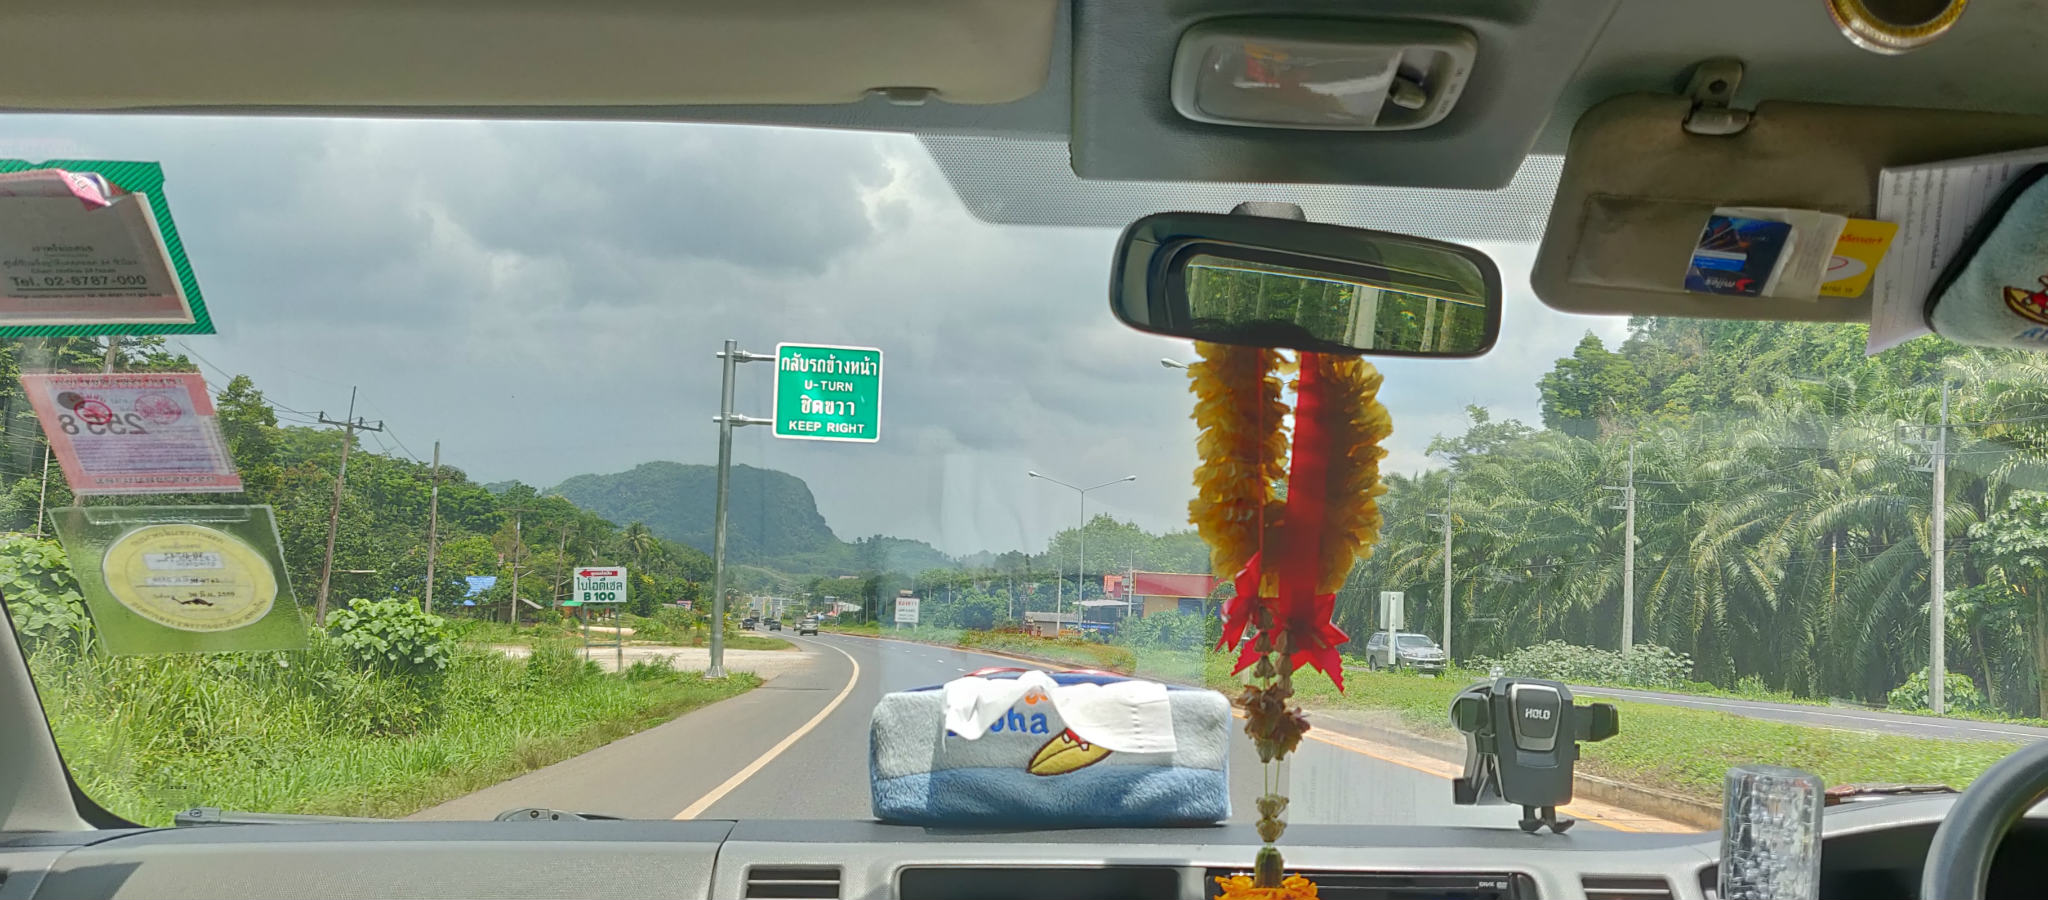 Travelling by car to Khao Sok (National Park)